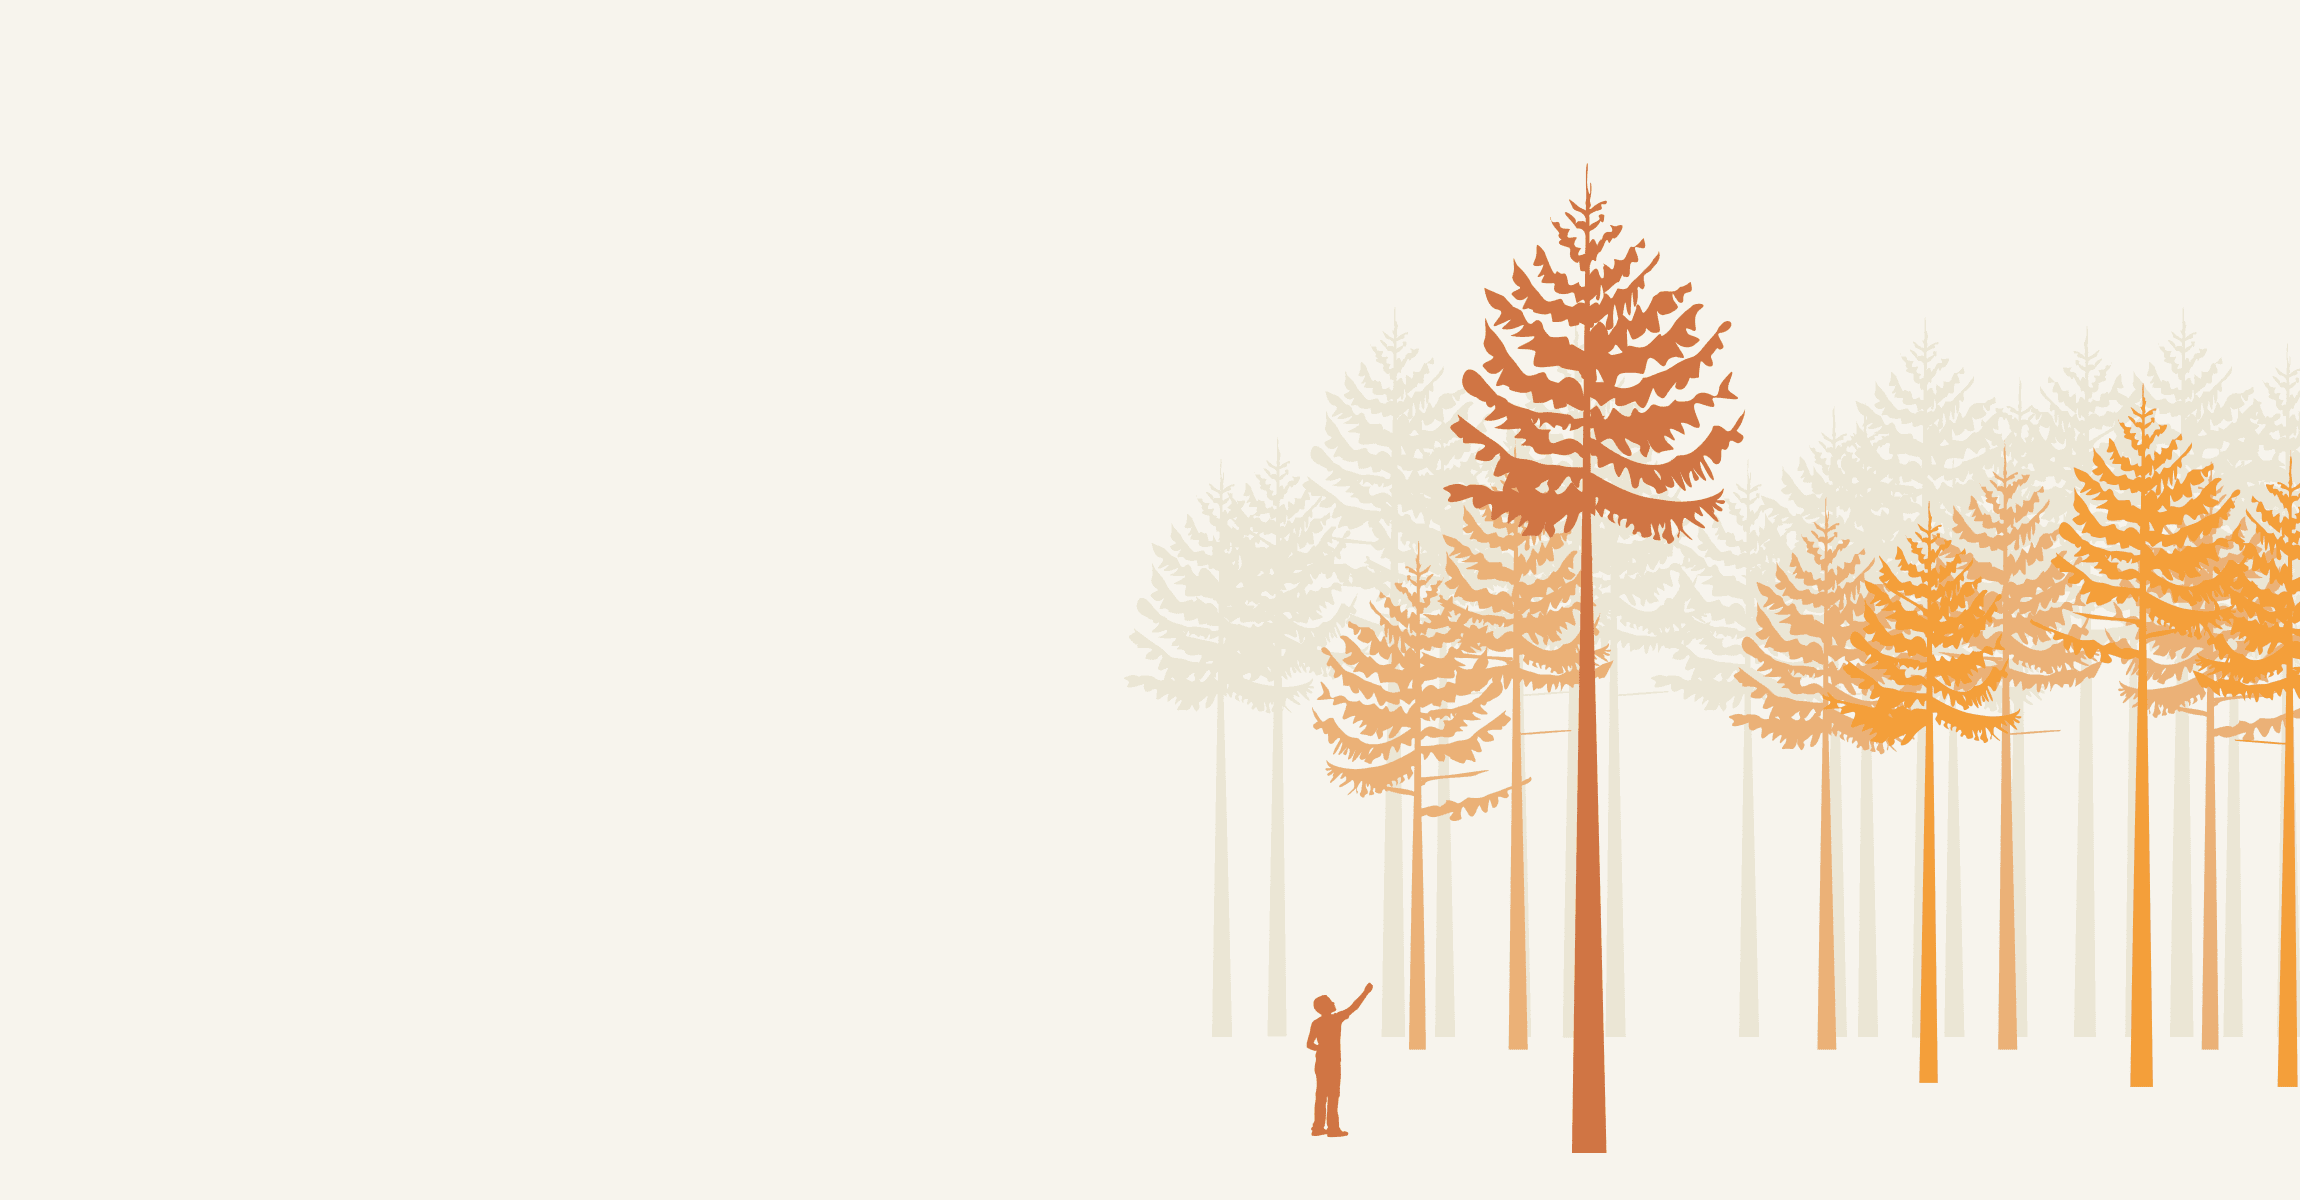 a forest comprised of tall trees, a young boy looks up at the tallest